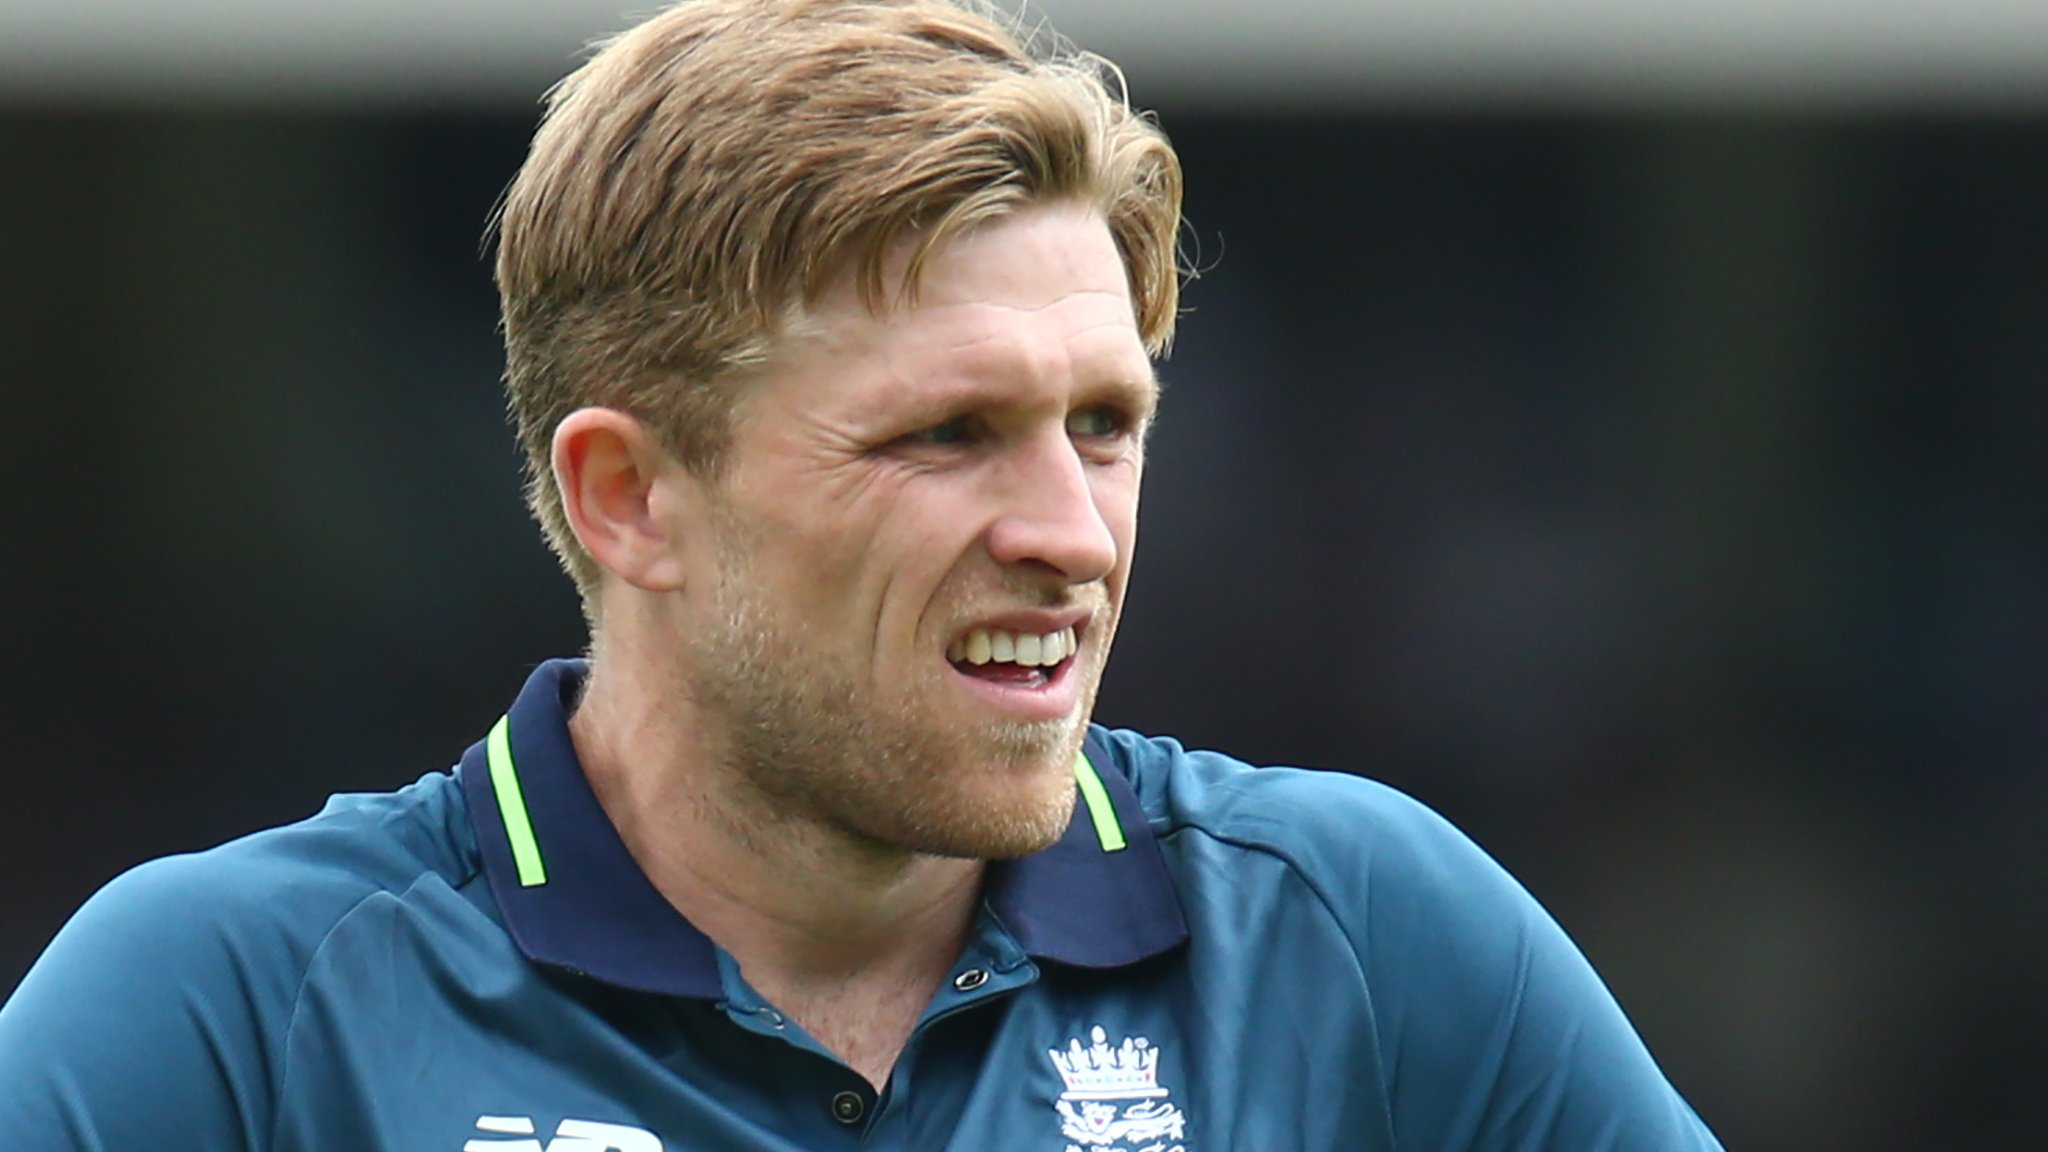 'They threatened to rip up my contract' - Willey risked Tykes future for IPL deal